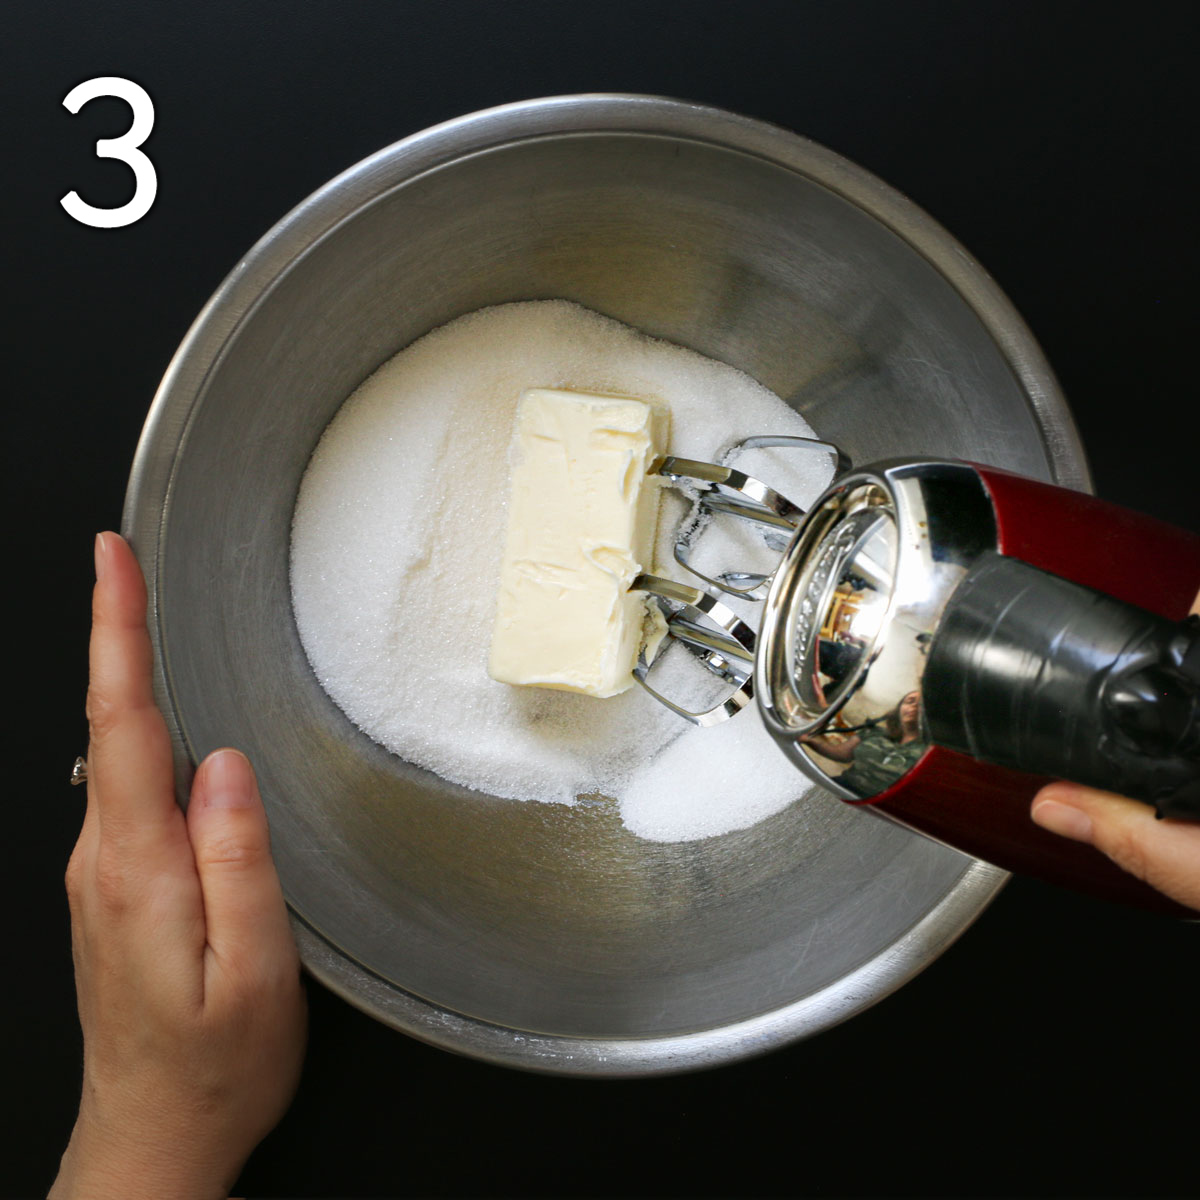 butter and sugar in a mixing bowl with hand mixer.